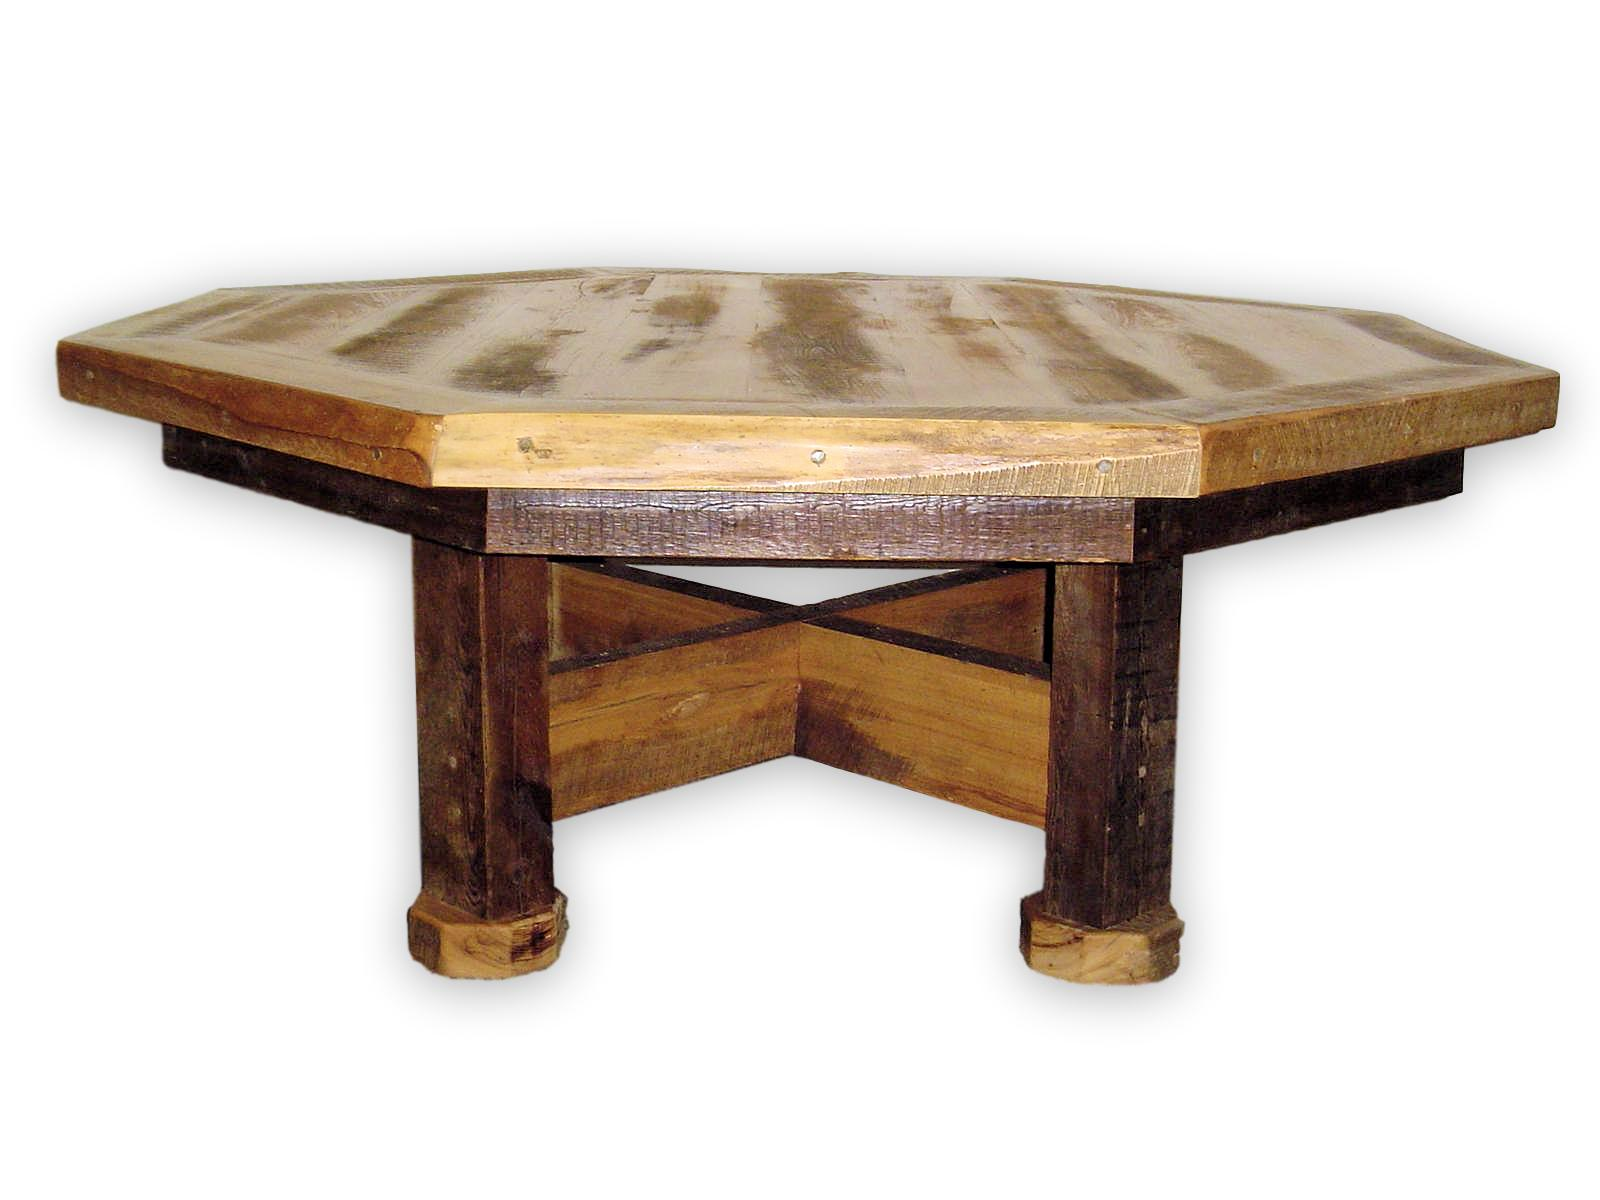 This dining table comes in two different sizes and can also be made in a bar top or pub style by request.  Hand crafted in the USA, made entirely from reclaimed wood both heart pine and douglas fir, and finished with a matte finish.  May be finished in standard matte finish or a waterproof upgraded finish for durability.